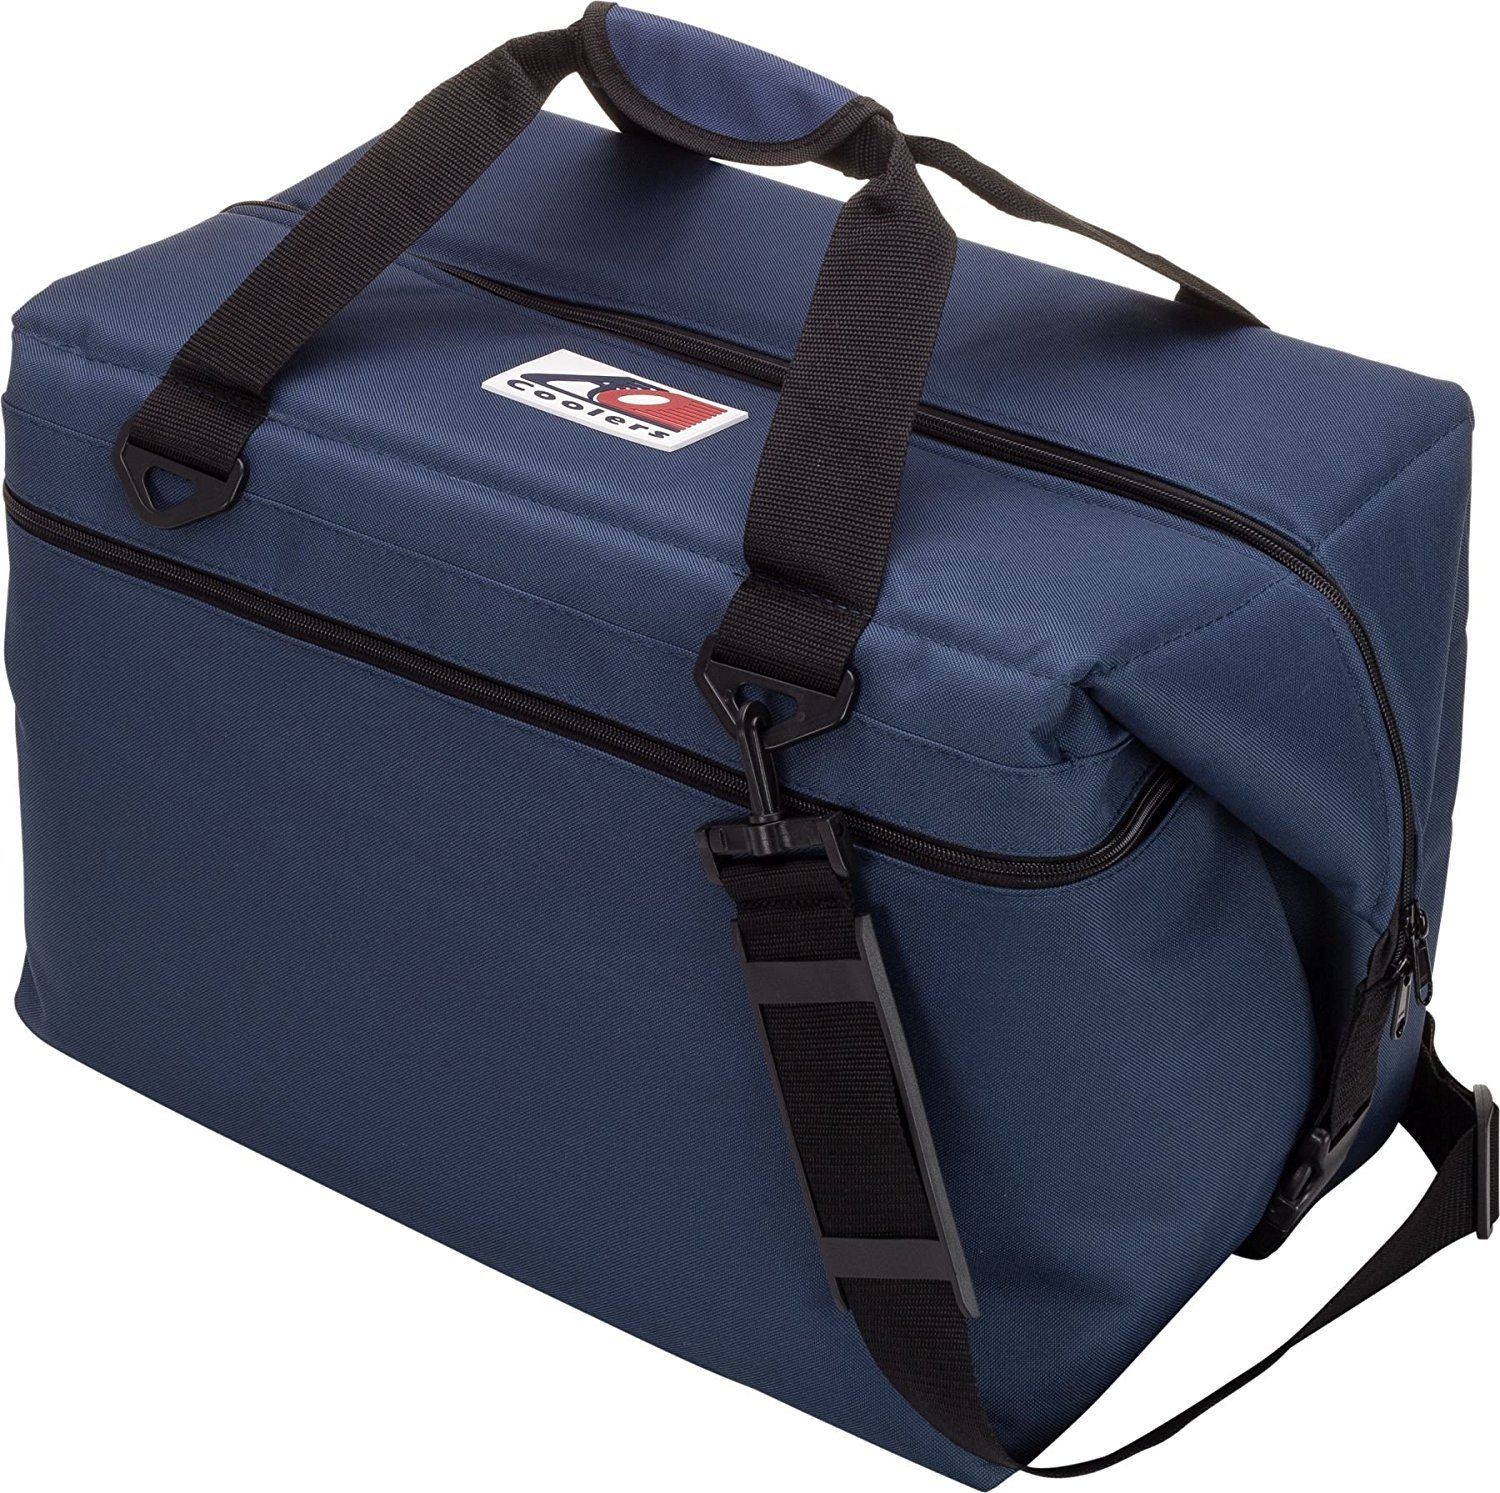 AO Coolers Canvas Soft Cooler with High-Density Insulation, Navy Blue, 48-Can